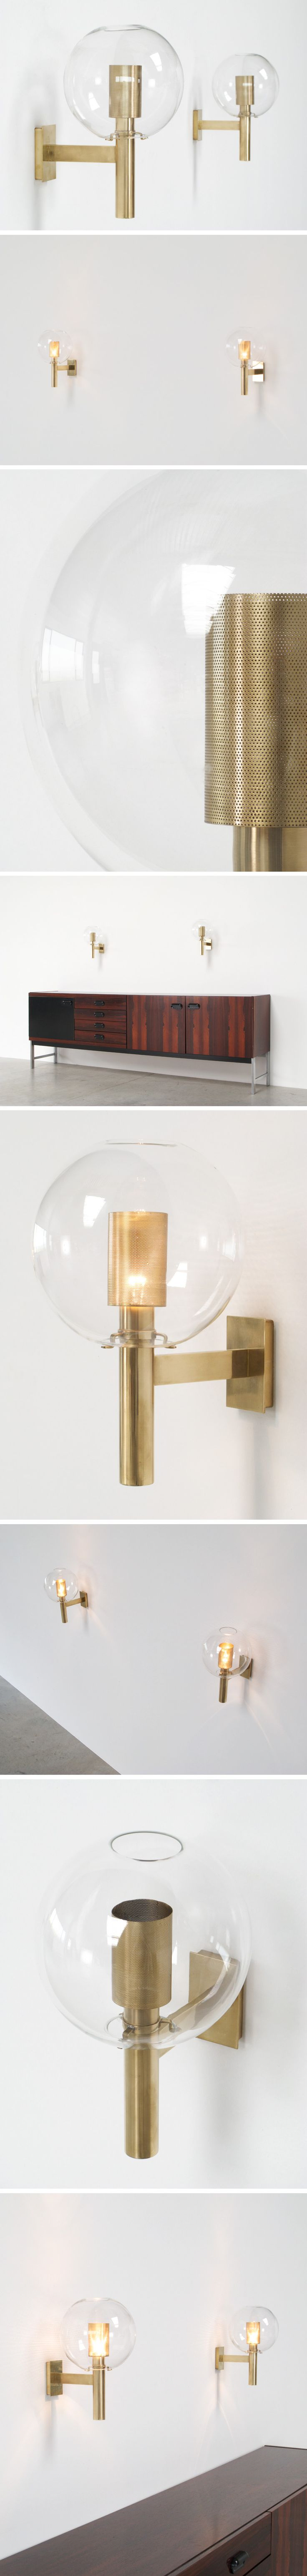 Set of 2 sconces light fixtures each featuring a clear glass globe with inside a brass body with perforated brass light diffuser Designed by Agne Jakobsson for AB Markaryd Creates a nice atmosphere of diffused light Ensemble de deux applique luminaires chacun avec un globe en verre transparent l int rieur une structure en laiton avec diffuseur en laiton perfore Con u par Agne Jakobsson pour AB Markaryd Cree une atmosph re agr able avec lumi re diffus e…